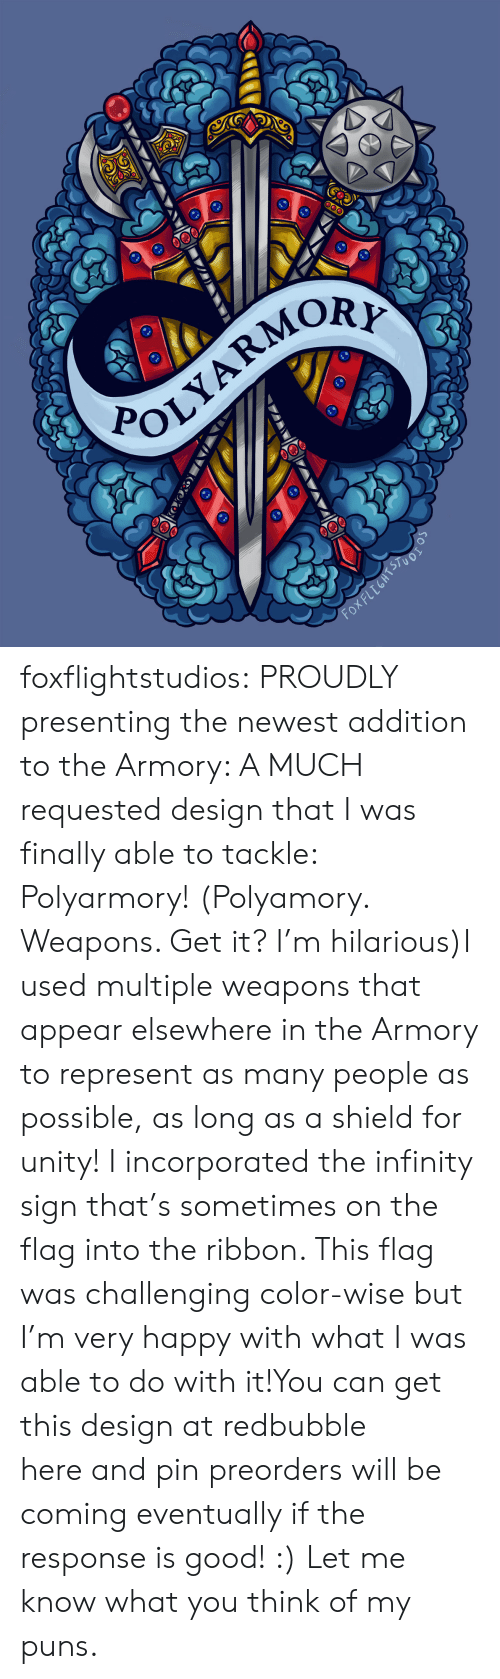 very happy: POLYARMOR  Fox FLEGHTSTUOI  (X foxflightstudios:  PROUDLY presenting the newest addition to the Armory: A MUCH requested design that I was finally able to tackle: Polyarmory! (Polyamory. Weapons. Get it? I'm hilarious)I used multiple weapons that appear elsewhere in the Armory to represent as many people as possible, as long as a shield for unity! I incorporated the infinity sign that's sometimes on the flag into the ribbon. This flag was challenging color-wise but I'm very happy with what I was able to do with it!You can get this design at redbubble here and pin preorders will be coming eventually if the response is good! :) Let me know what you think of my puns.